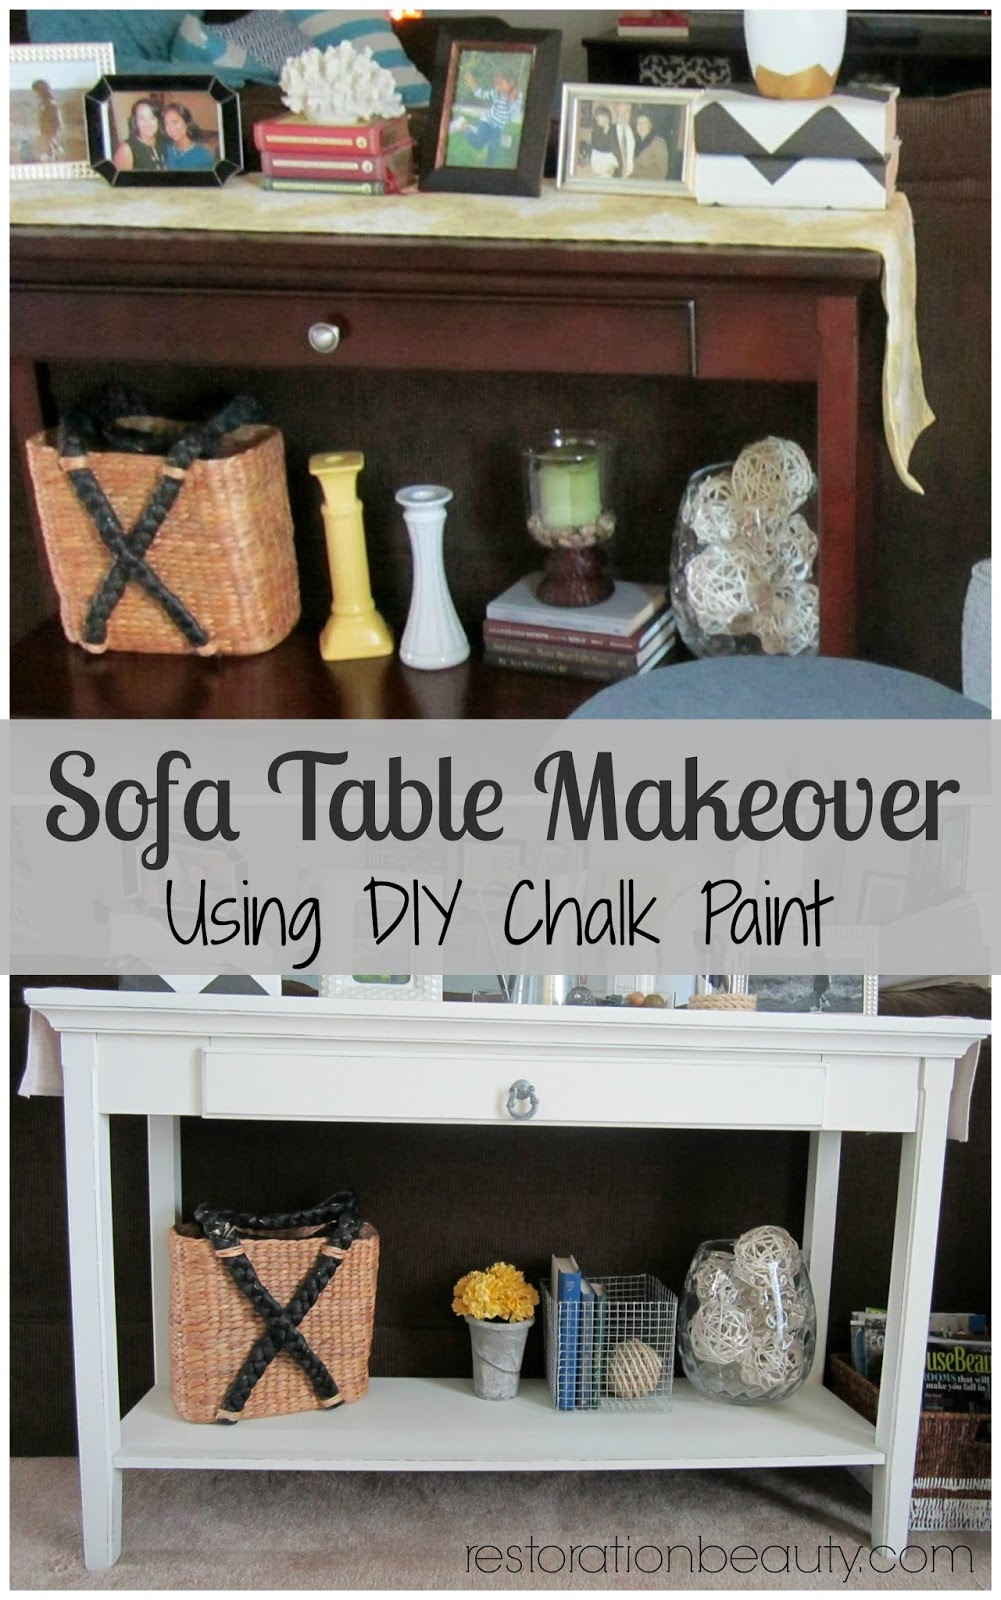 Restoration beauty sofa table makeover using diy chalk paint for Diy chalk paint problems